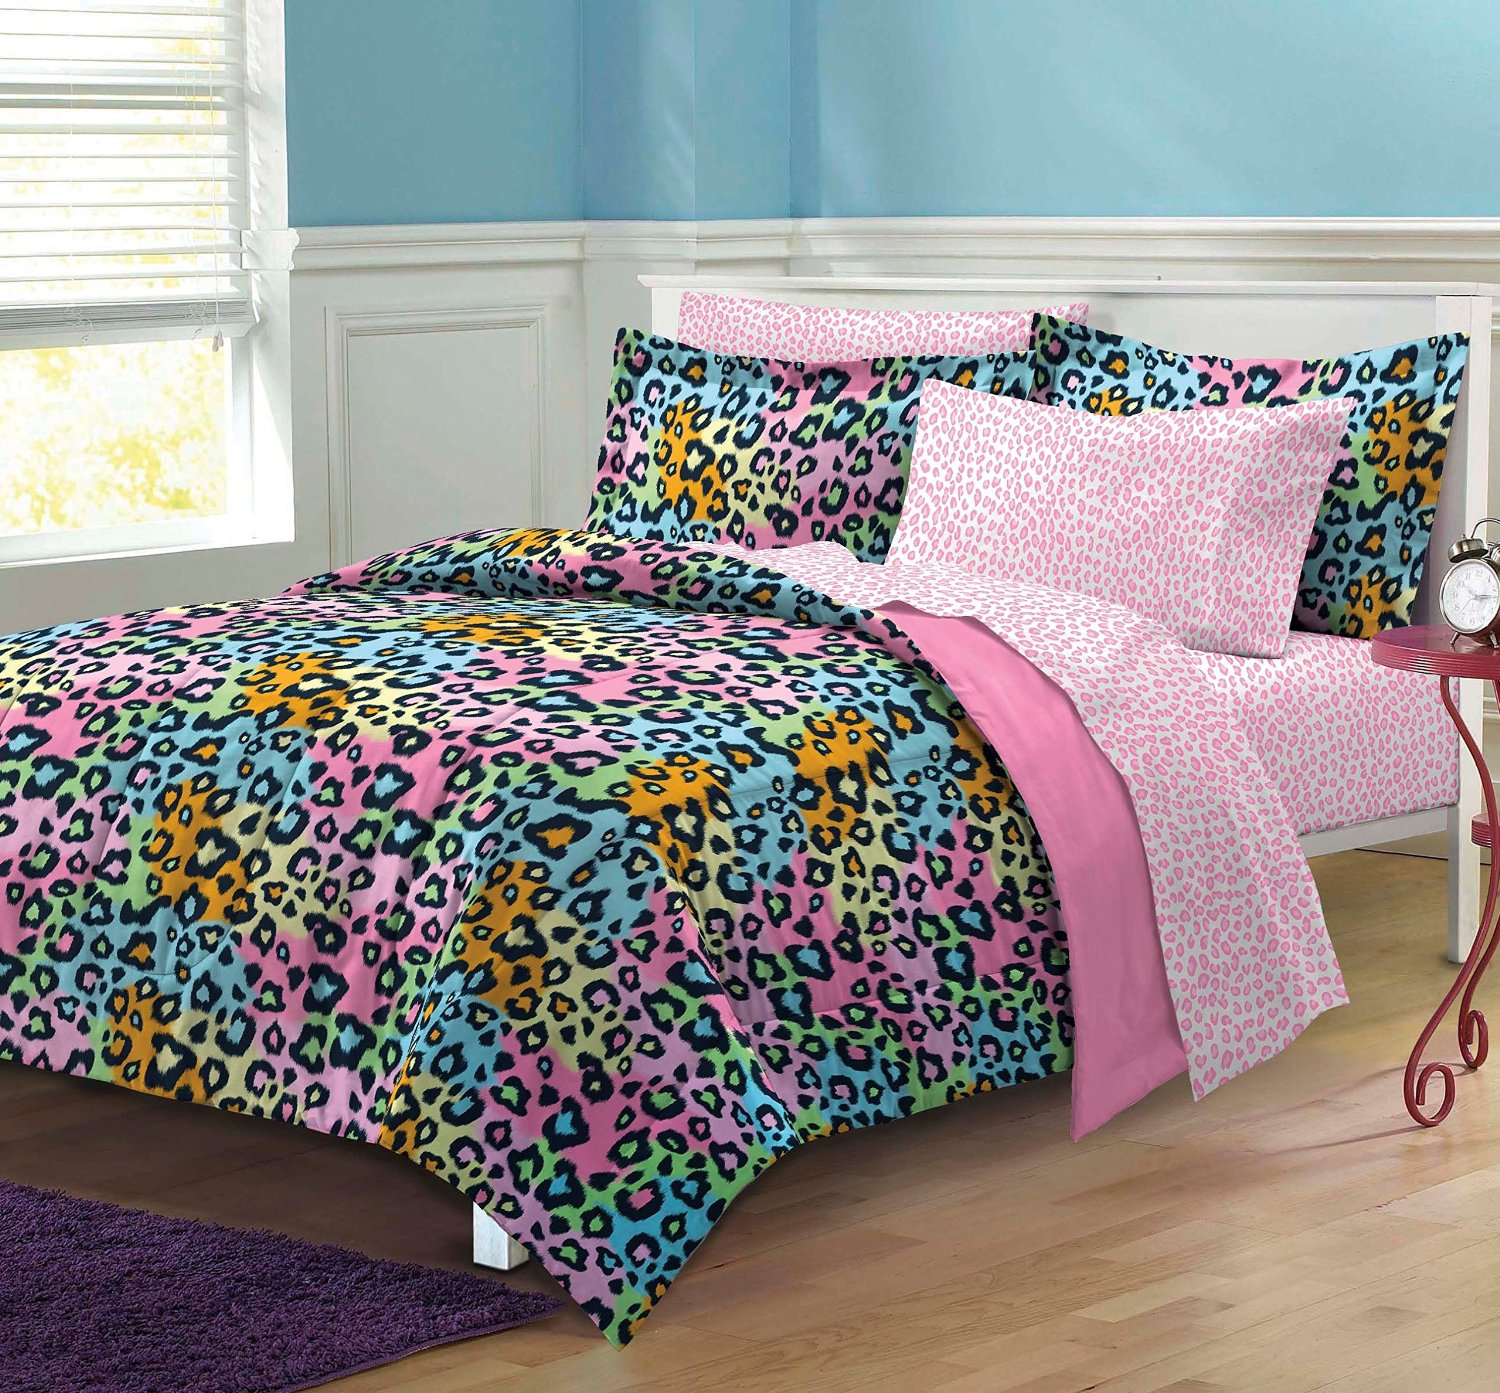 Funky Comforters Bedding Amp Bedroom Ideas For Tween Amp Teen